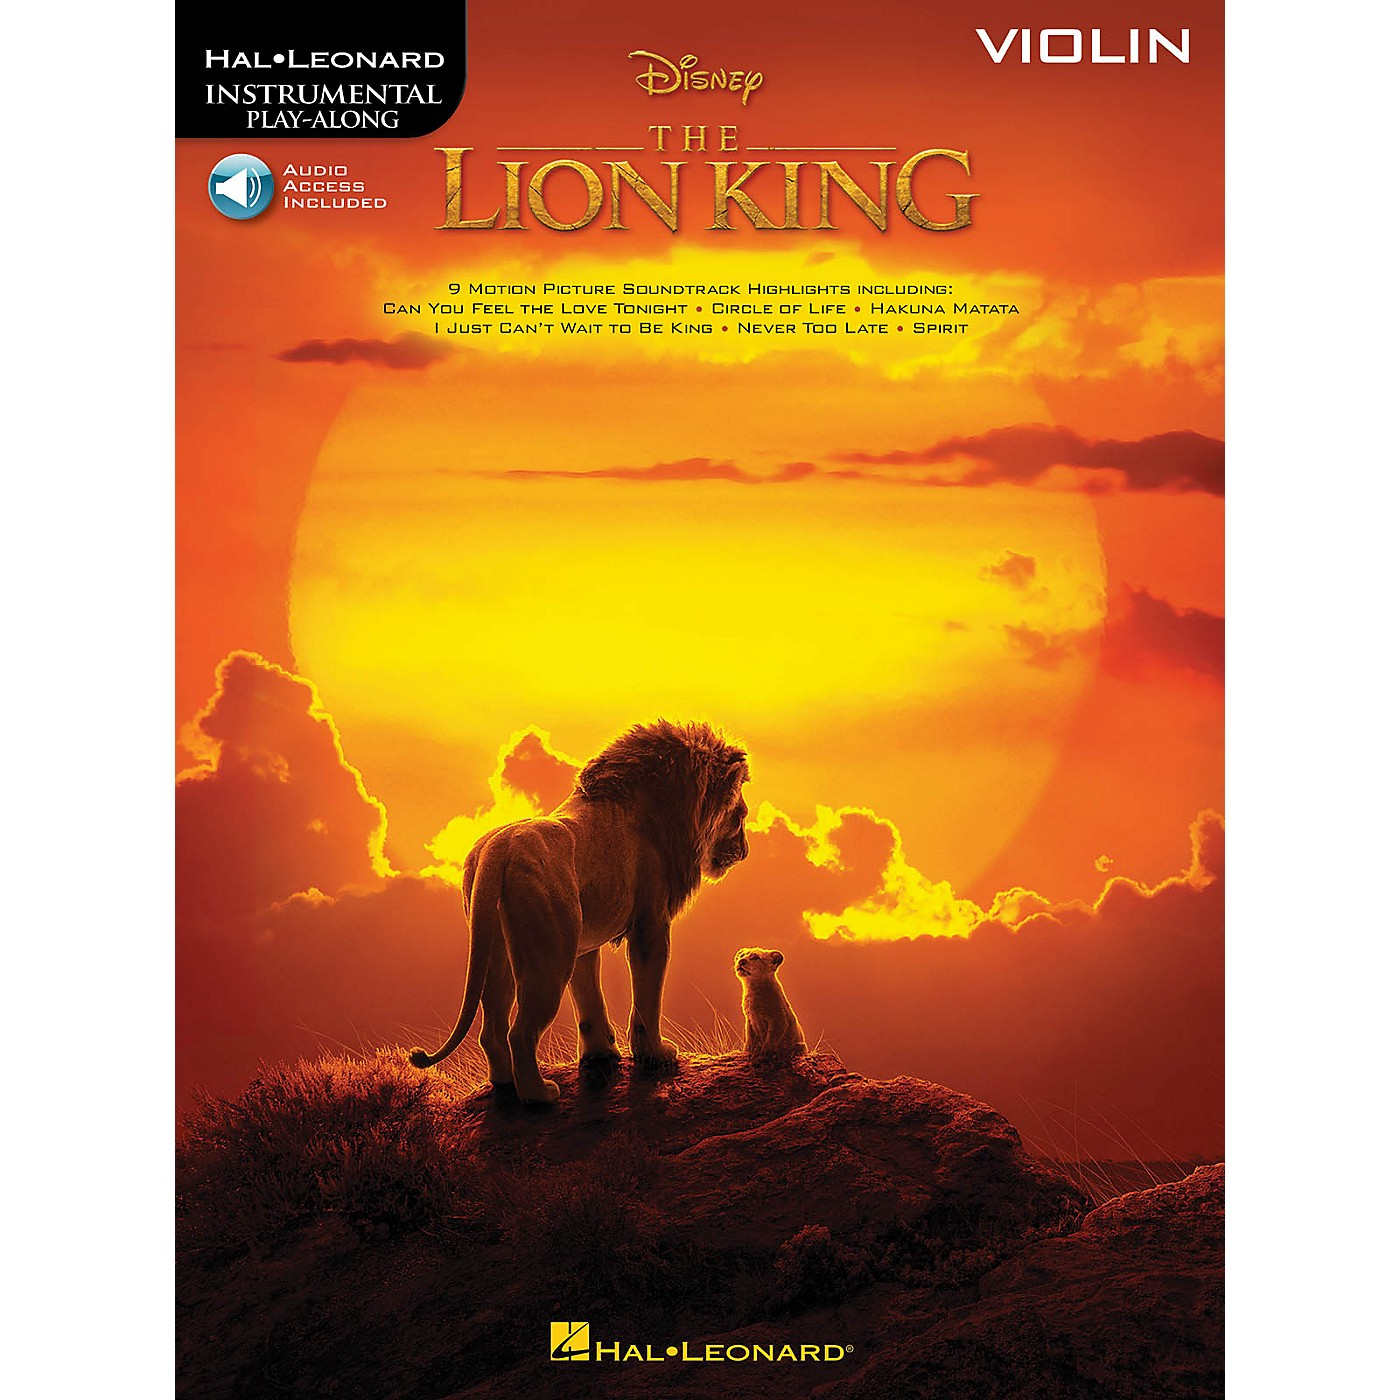 Hal Leonard The Lion King for Violin Instrumental Play-Along Book/Audio Online thumbnail